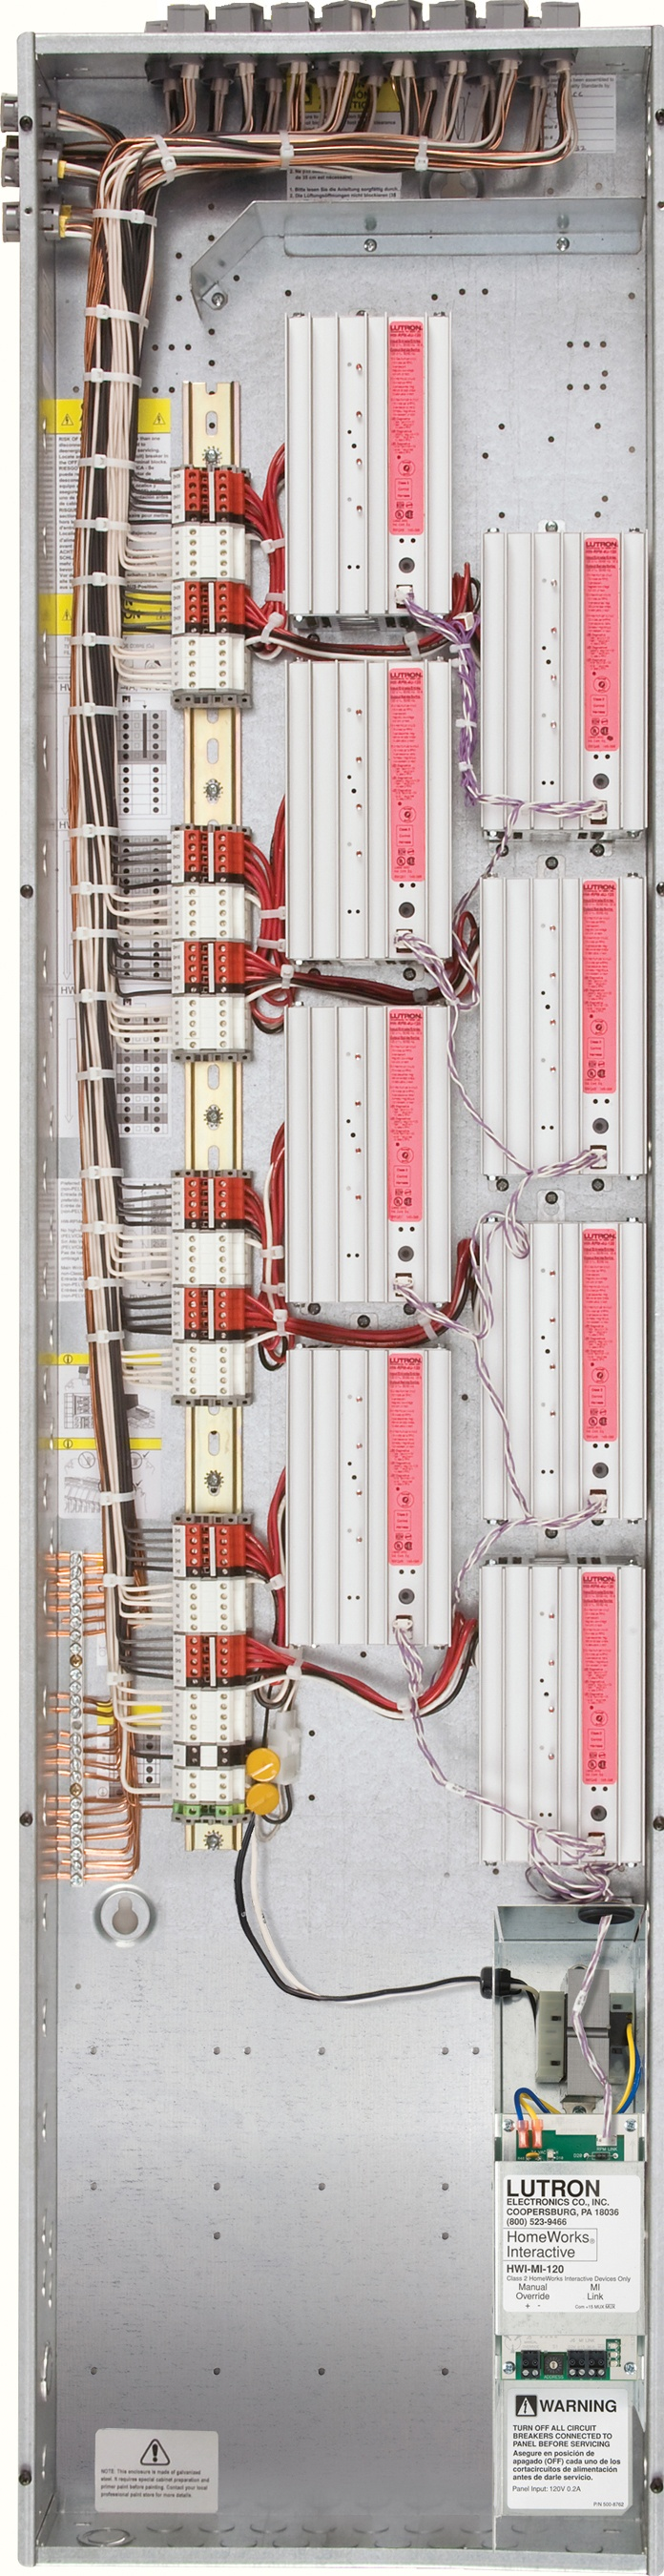 lutron homeworks hard wired lighting control panel this is where Lutron Homeworks Wiring Diagram lutron homeworks hard wired lighting control panel this is where all the lighting loads get wired in lighting control pinterest lights, lutron homeworks wiring diagram